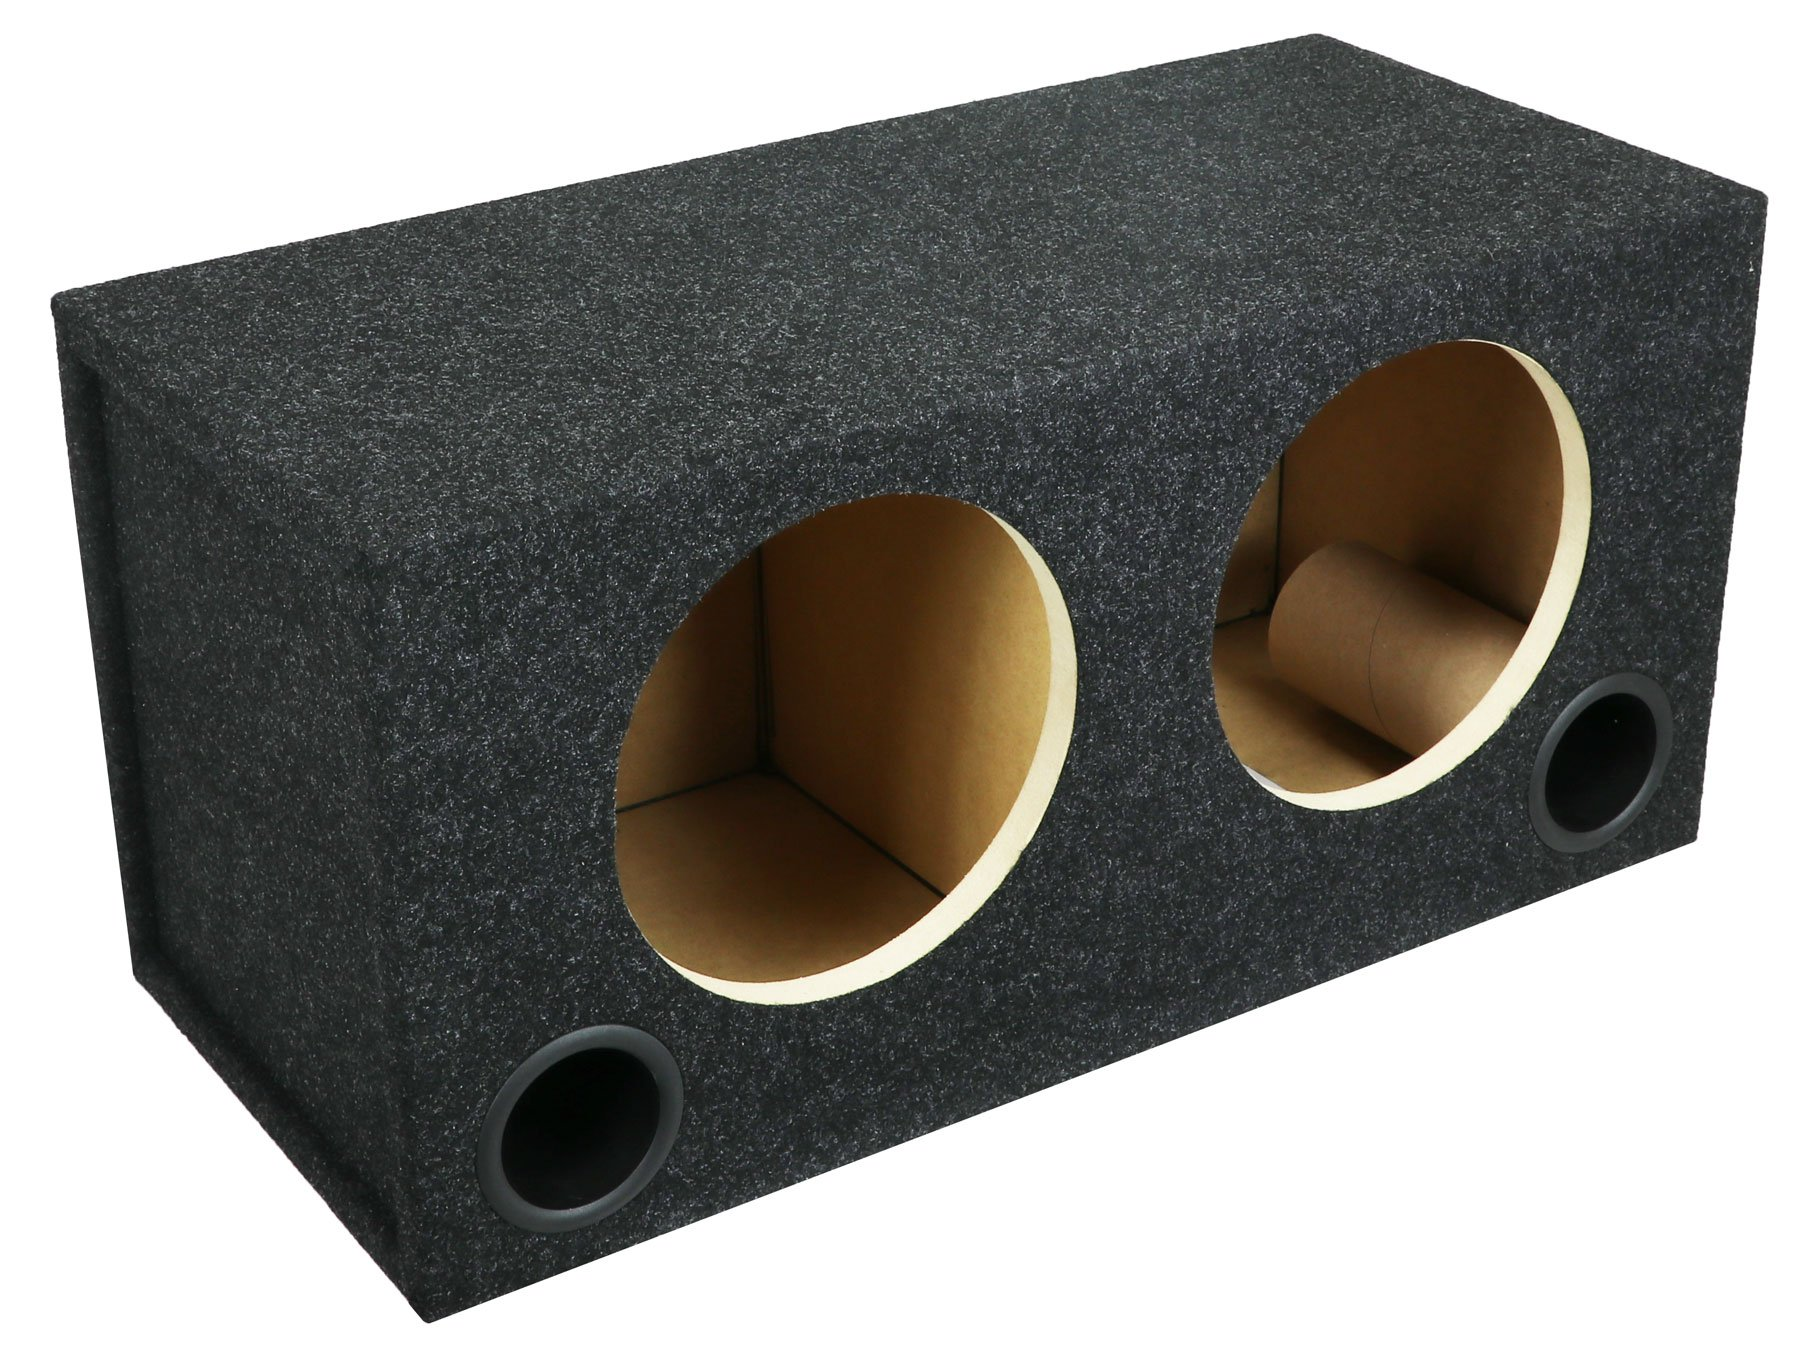 Atrend 10RPD Dual RF Model P3D4-10/P2D4-10 Subwoofer Enclosure, Black by Atrend